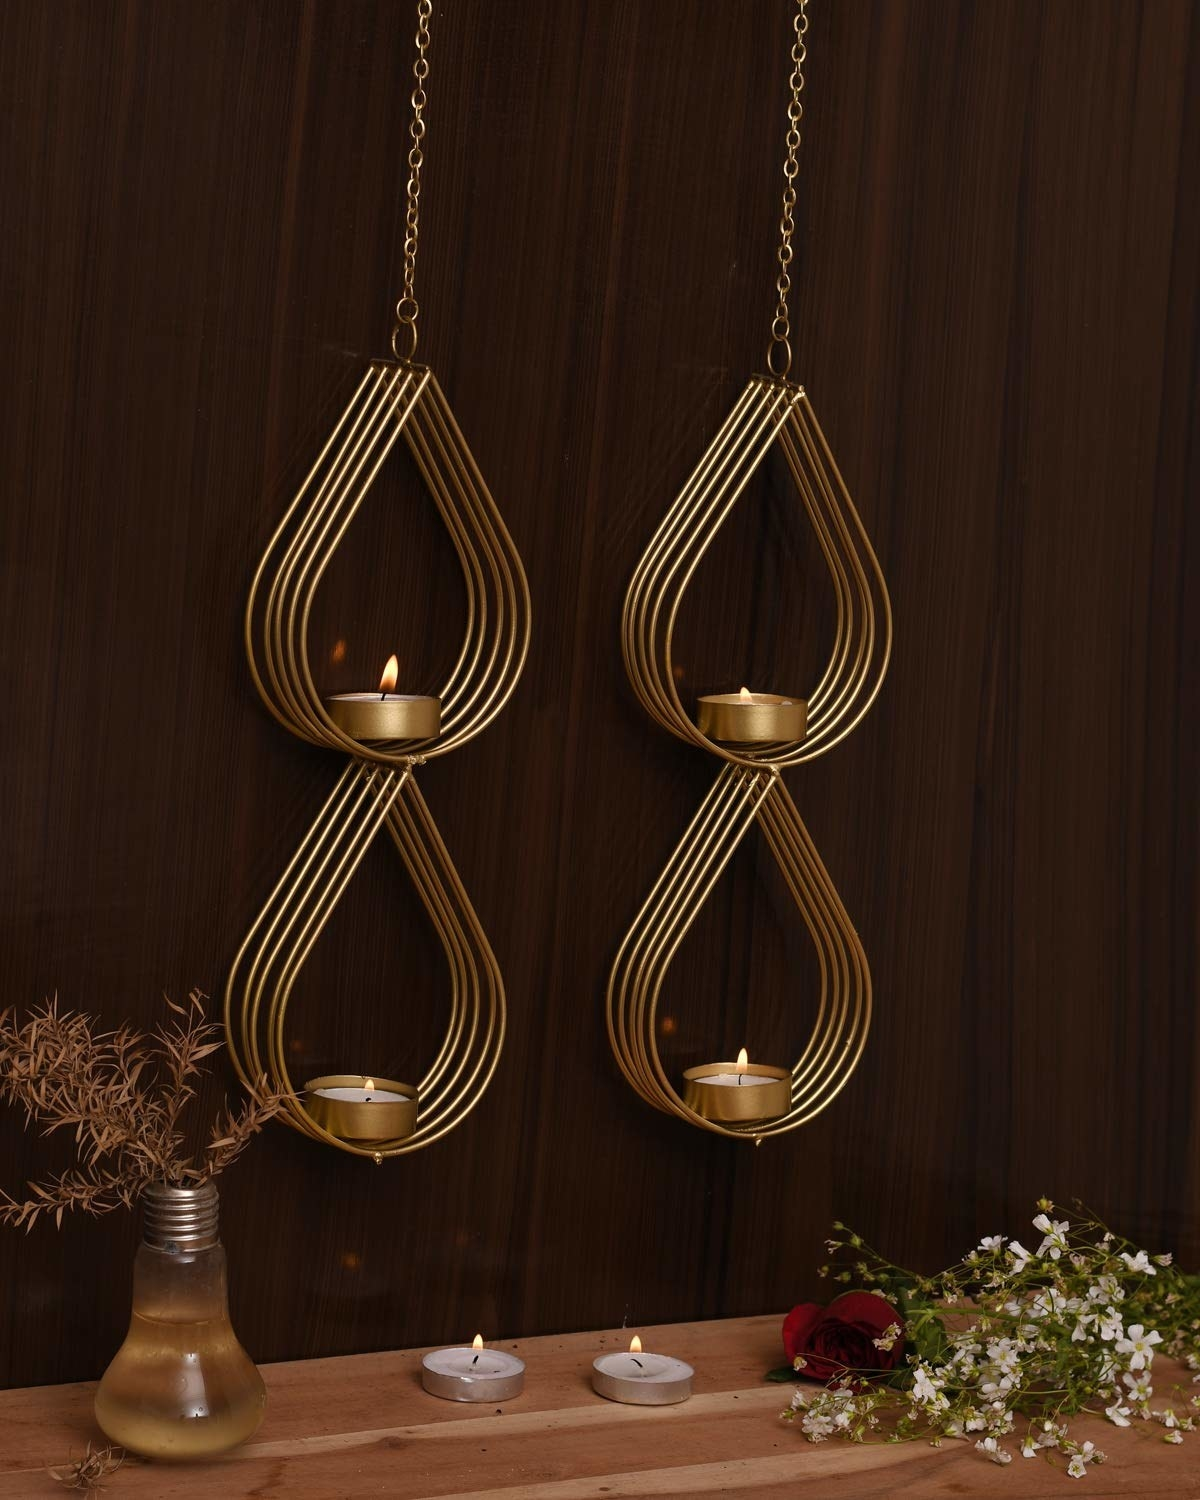 Four teardrop-shaped hanging candle holders.